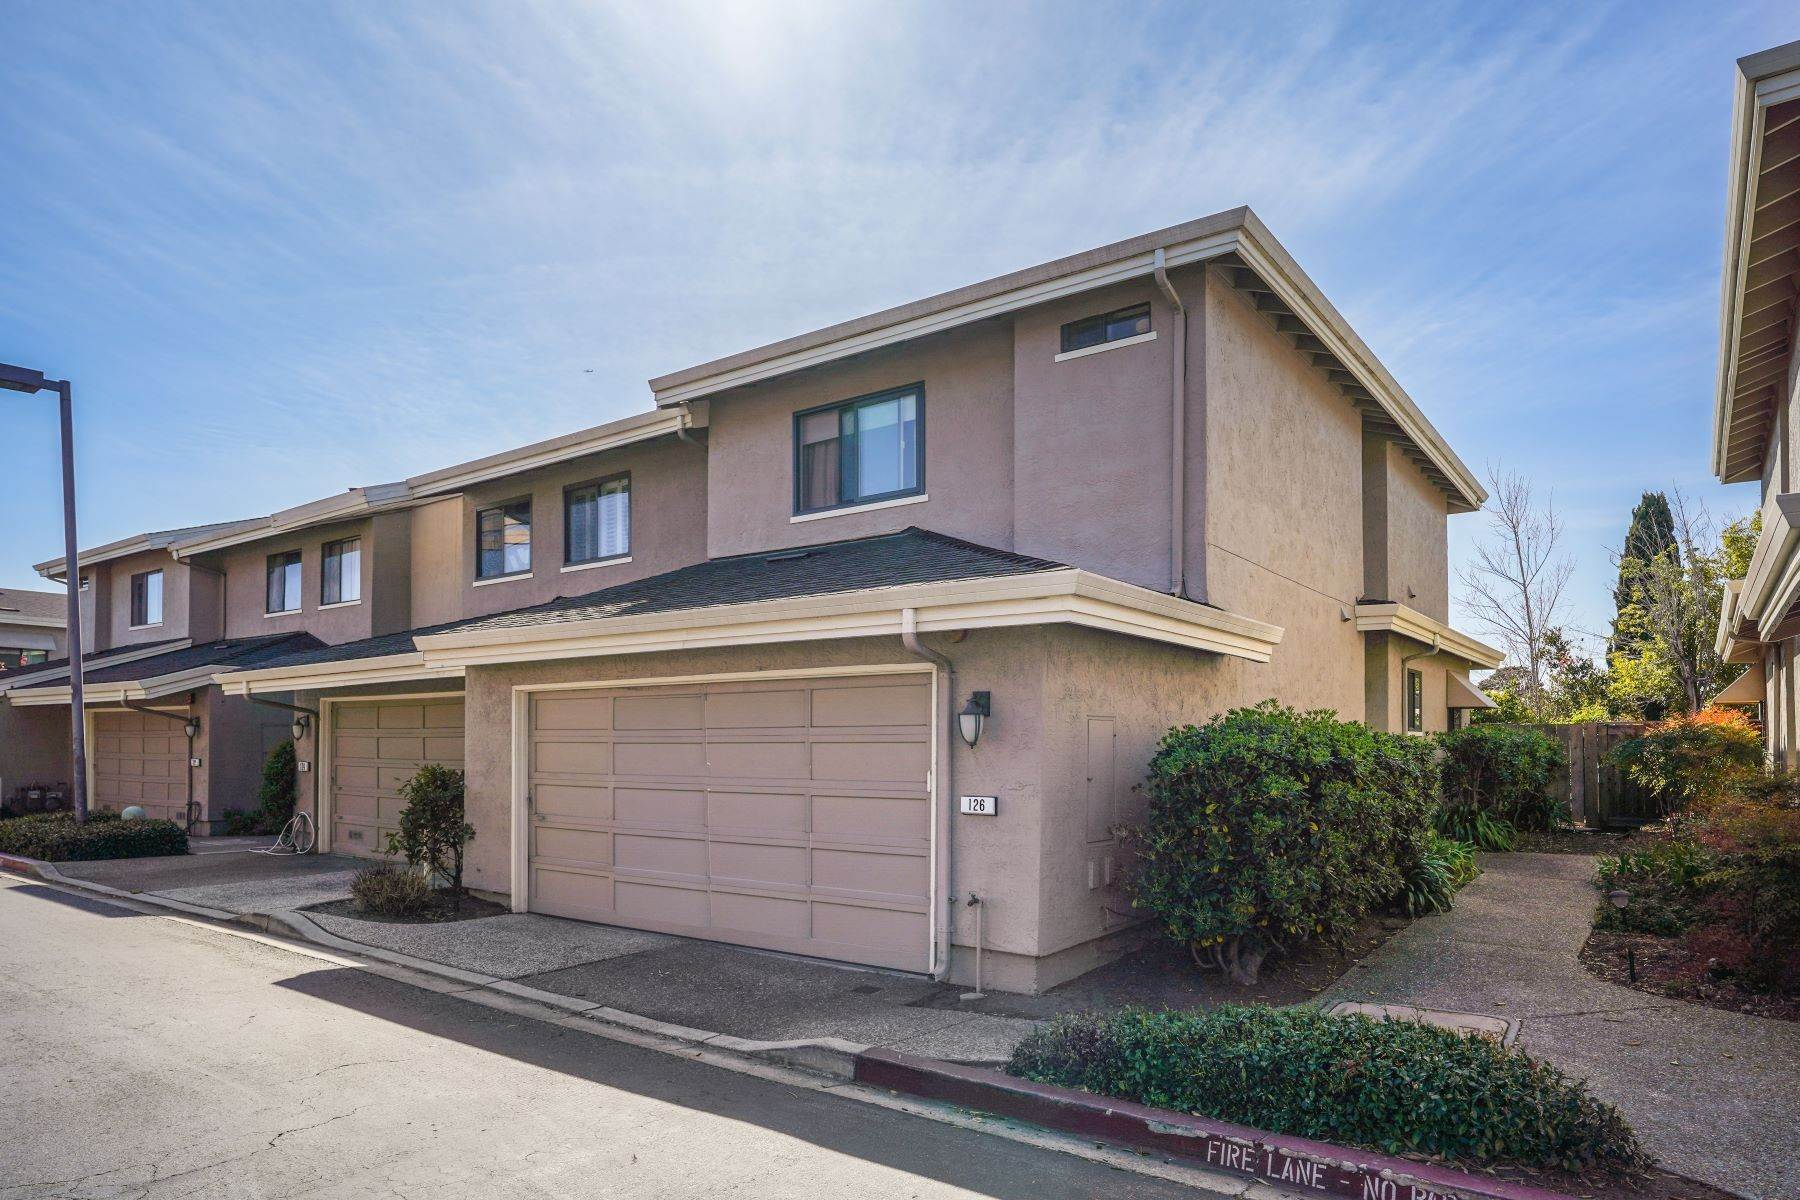 30. townhouses for Sale at Contemporary Townhome with Excellent Mid-Peninsula Location 126 Albacore Lane Foster City, California 94404 United States